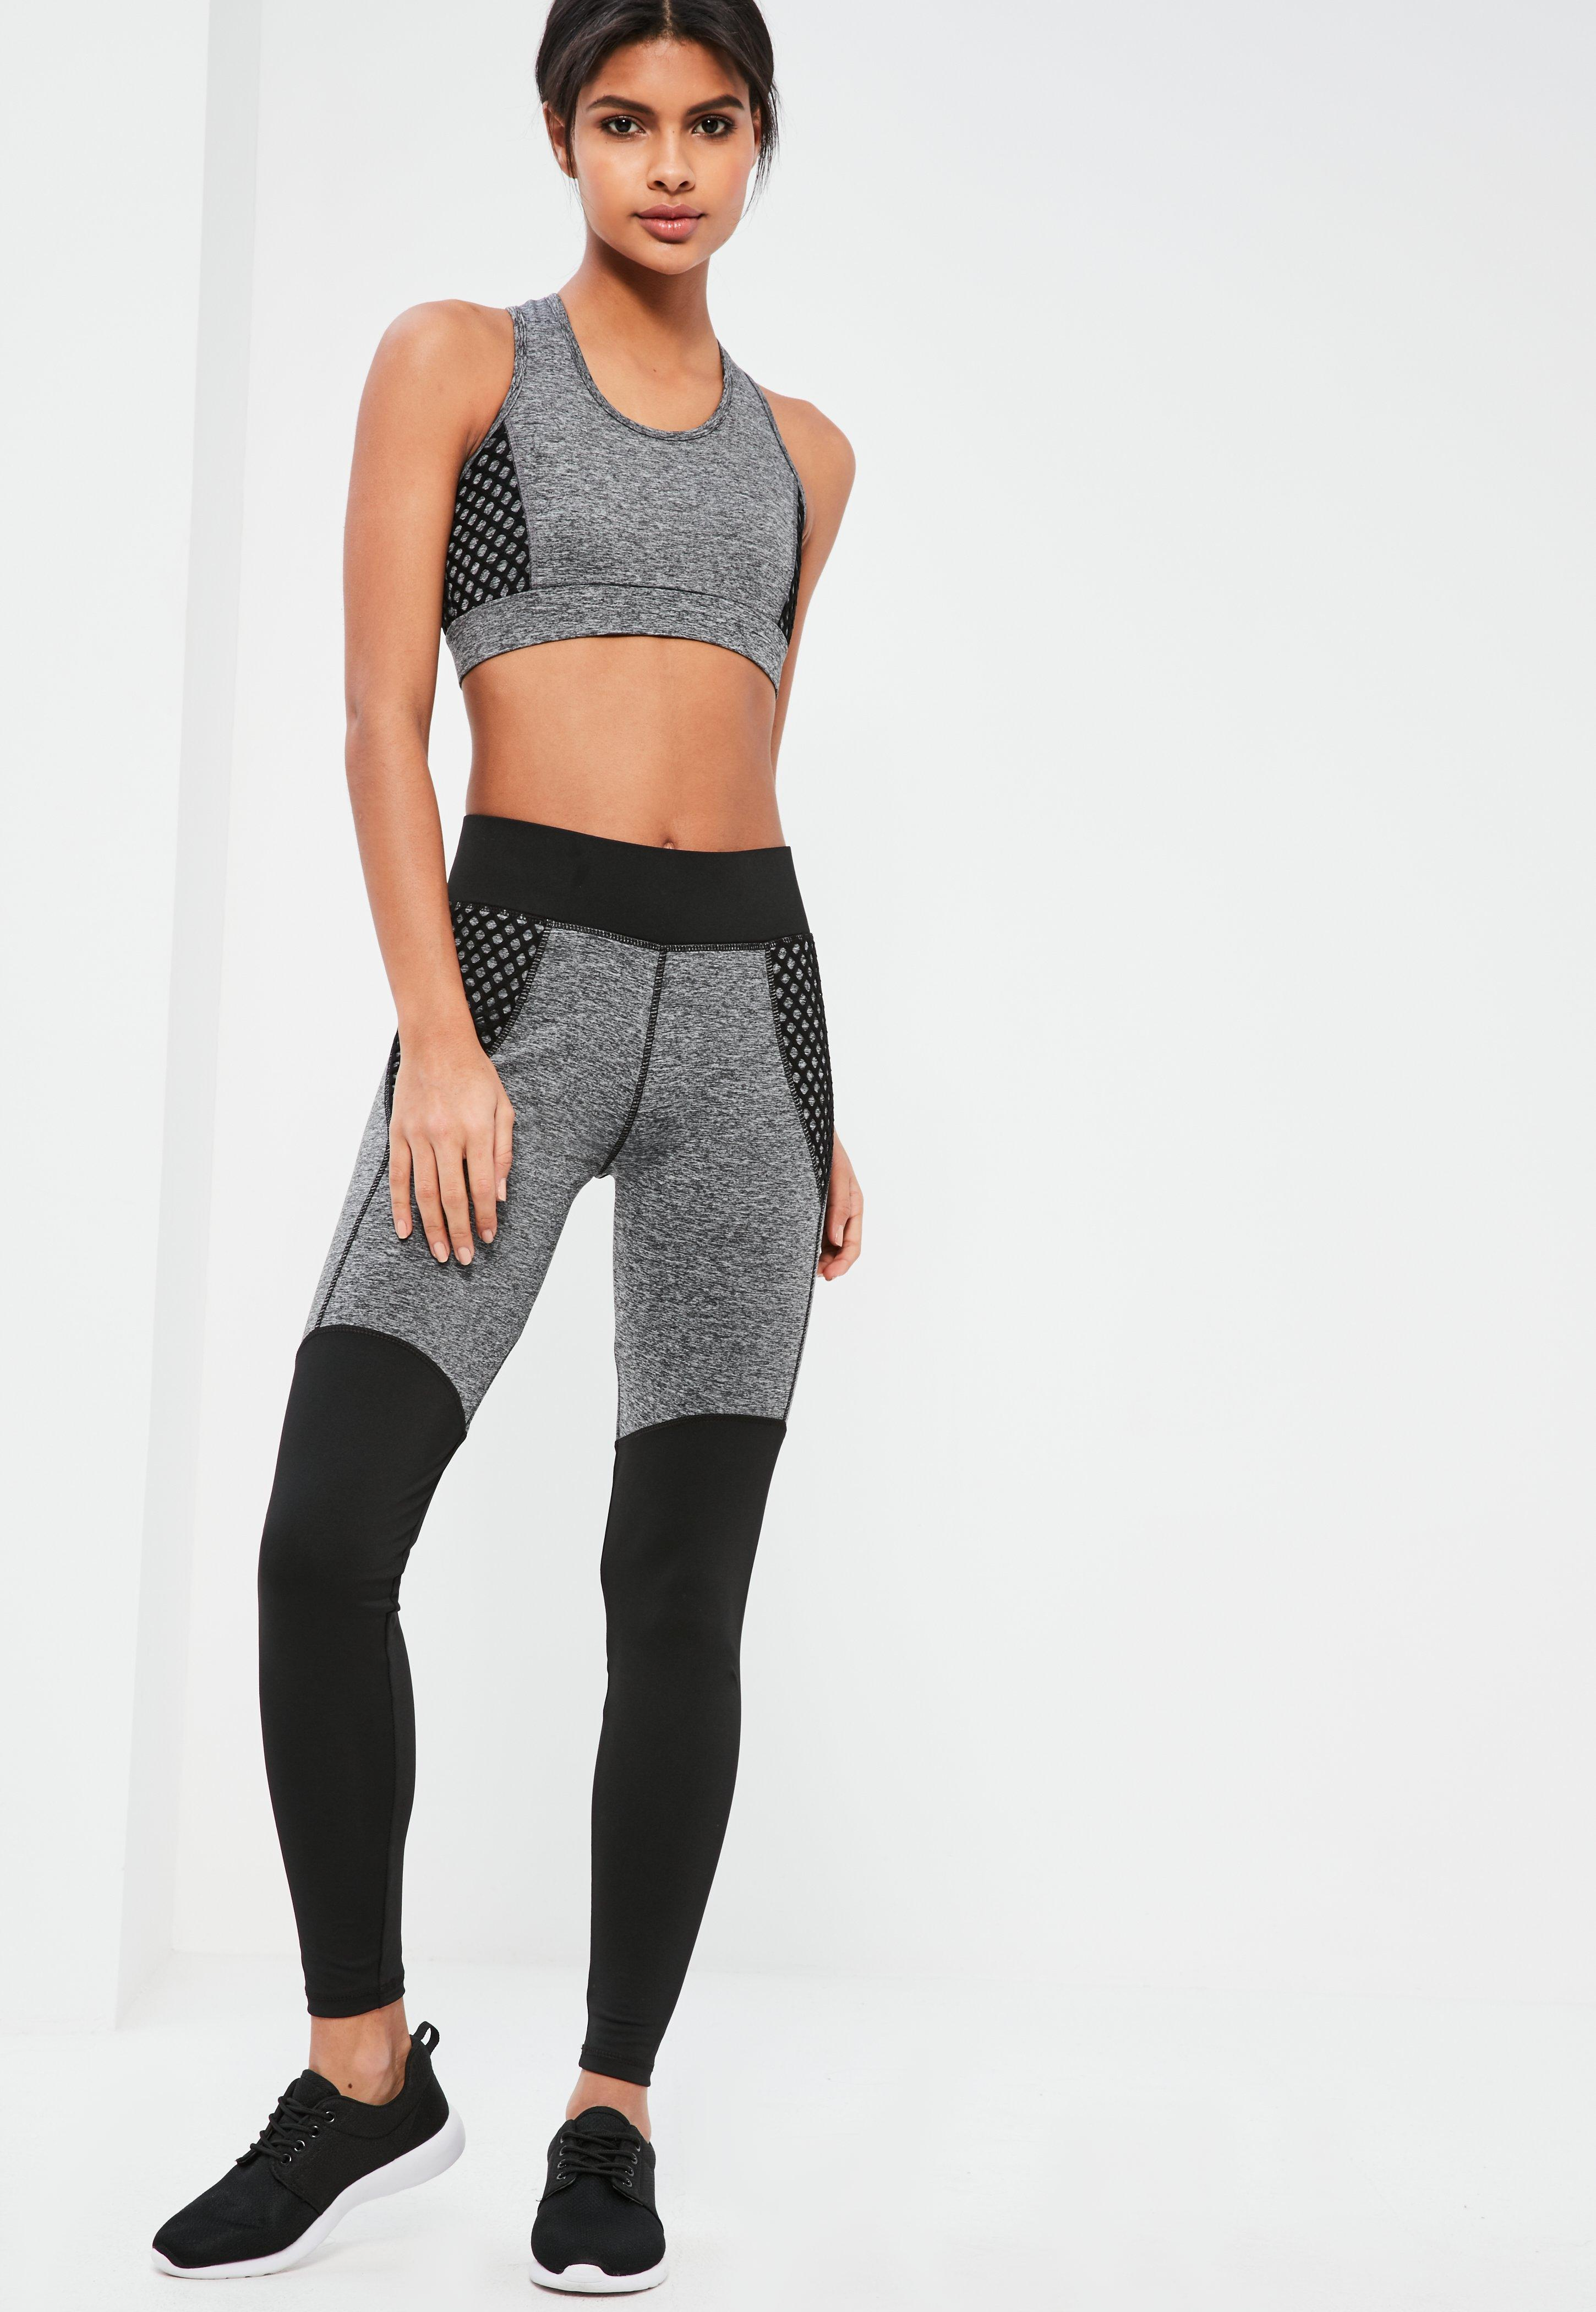 6b370bef830e82 Missguided Active Grey Fishnet Detail Sports Leggings in Gray - Lyst